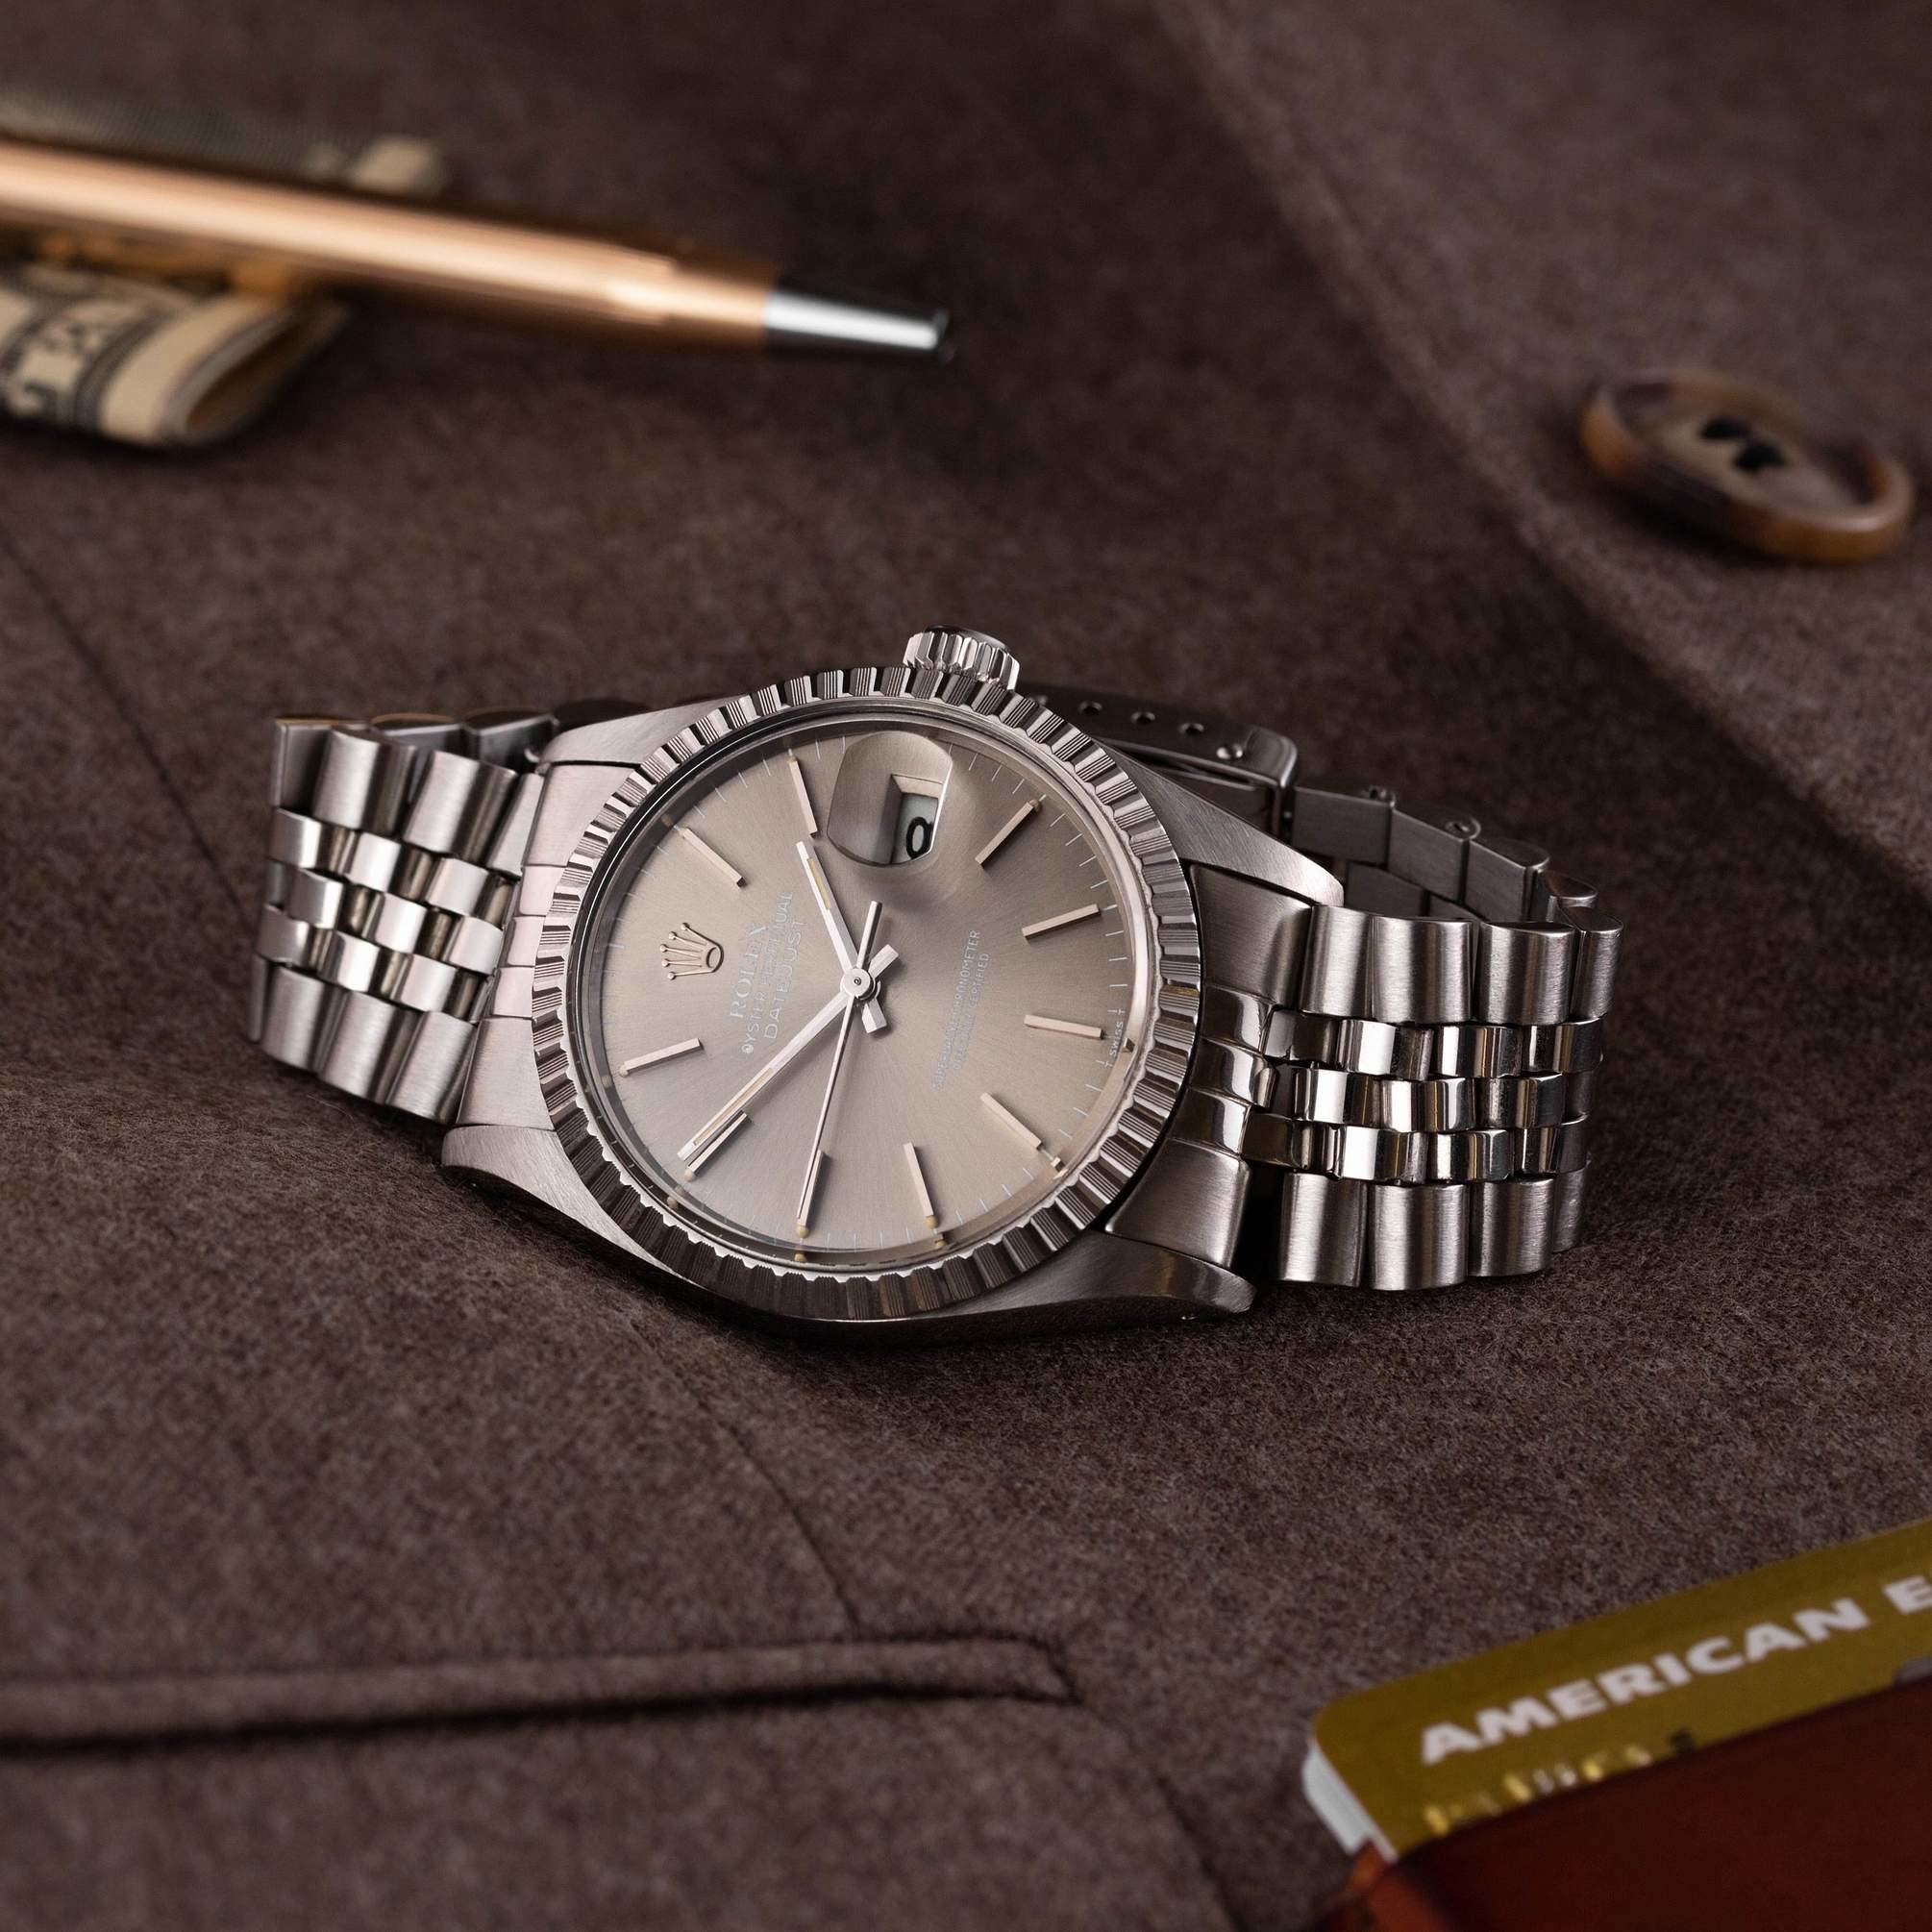 Rolex Datejust 16030 taupe dial - The Modest Man